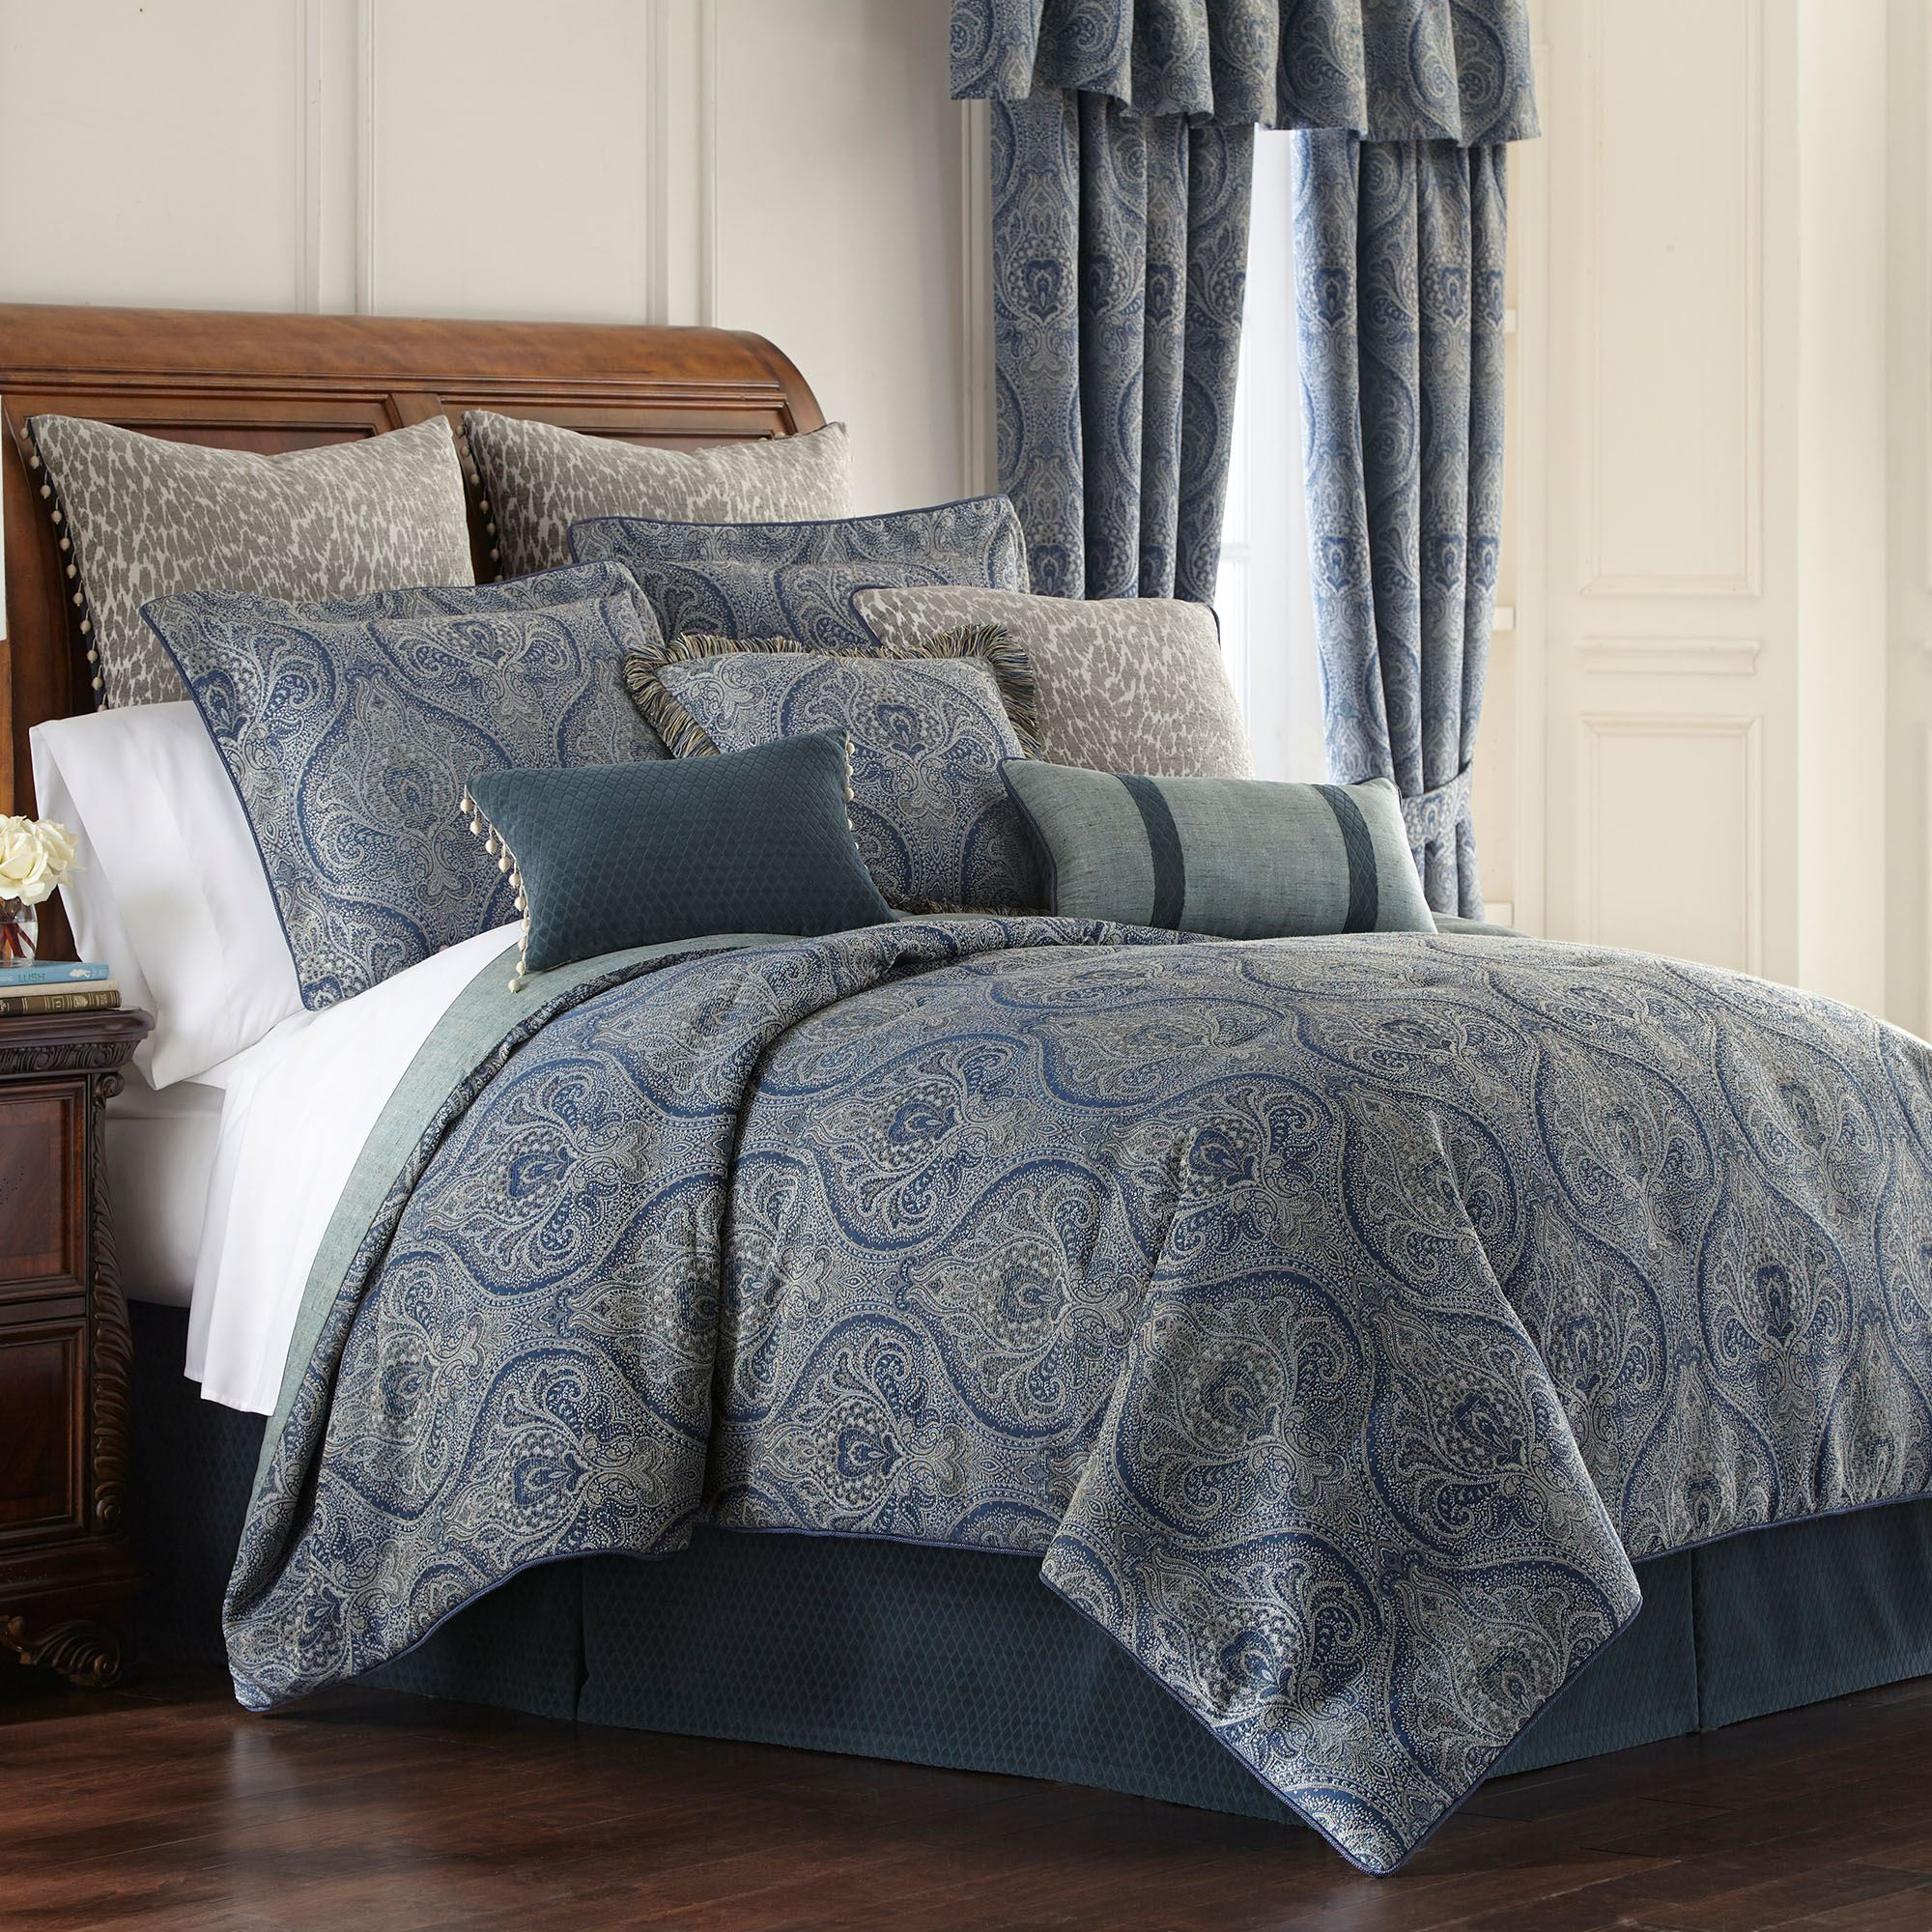 comforter outstanding full and big ter about you size of deals linen bubble set boys denim white little double a know ddler spread purple quilt griffin kids apparel children sets duvet curtains blue wanted girl to ters sheets bedding boy everything guppies